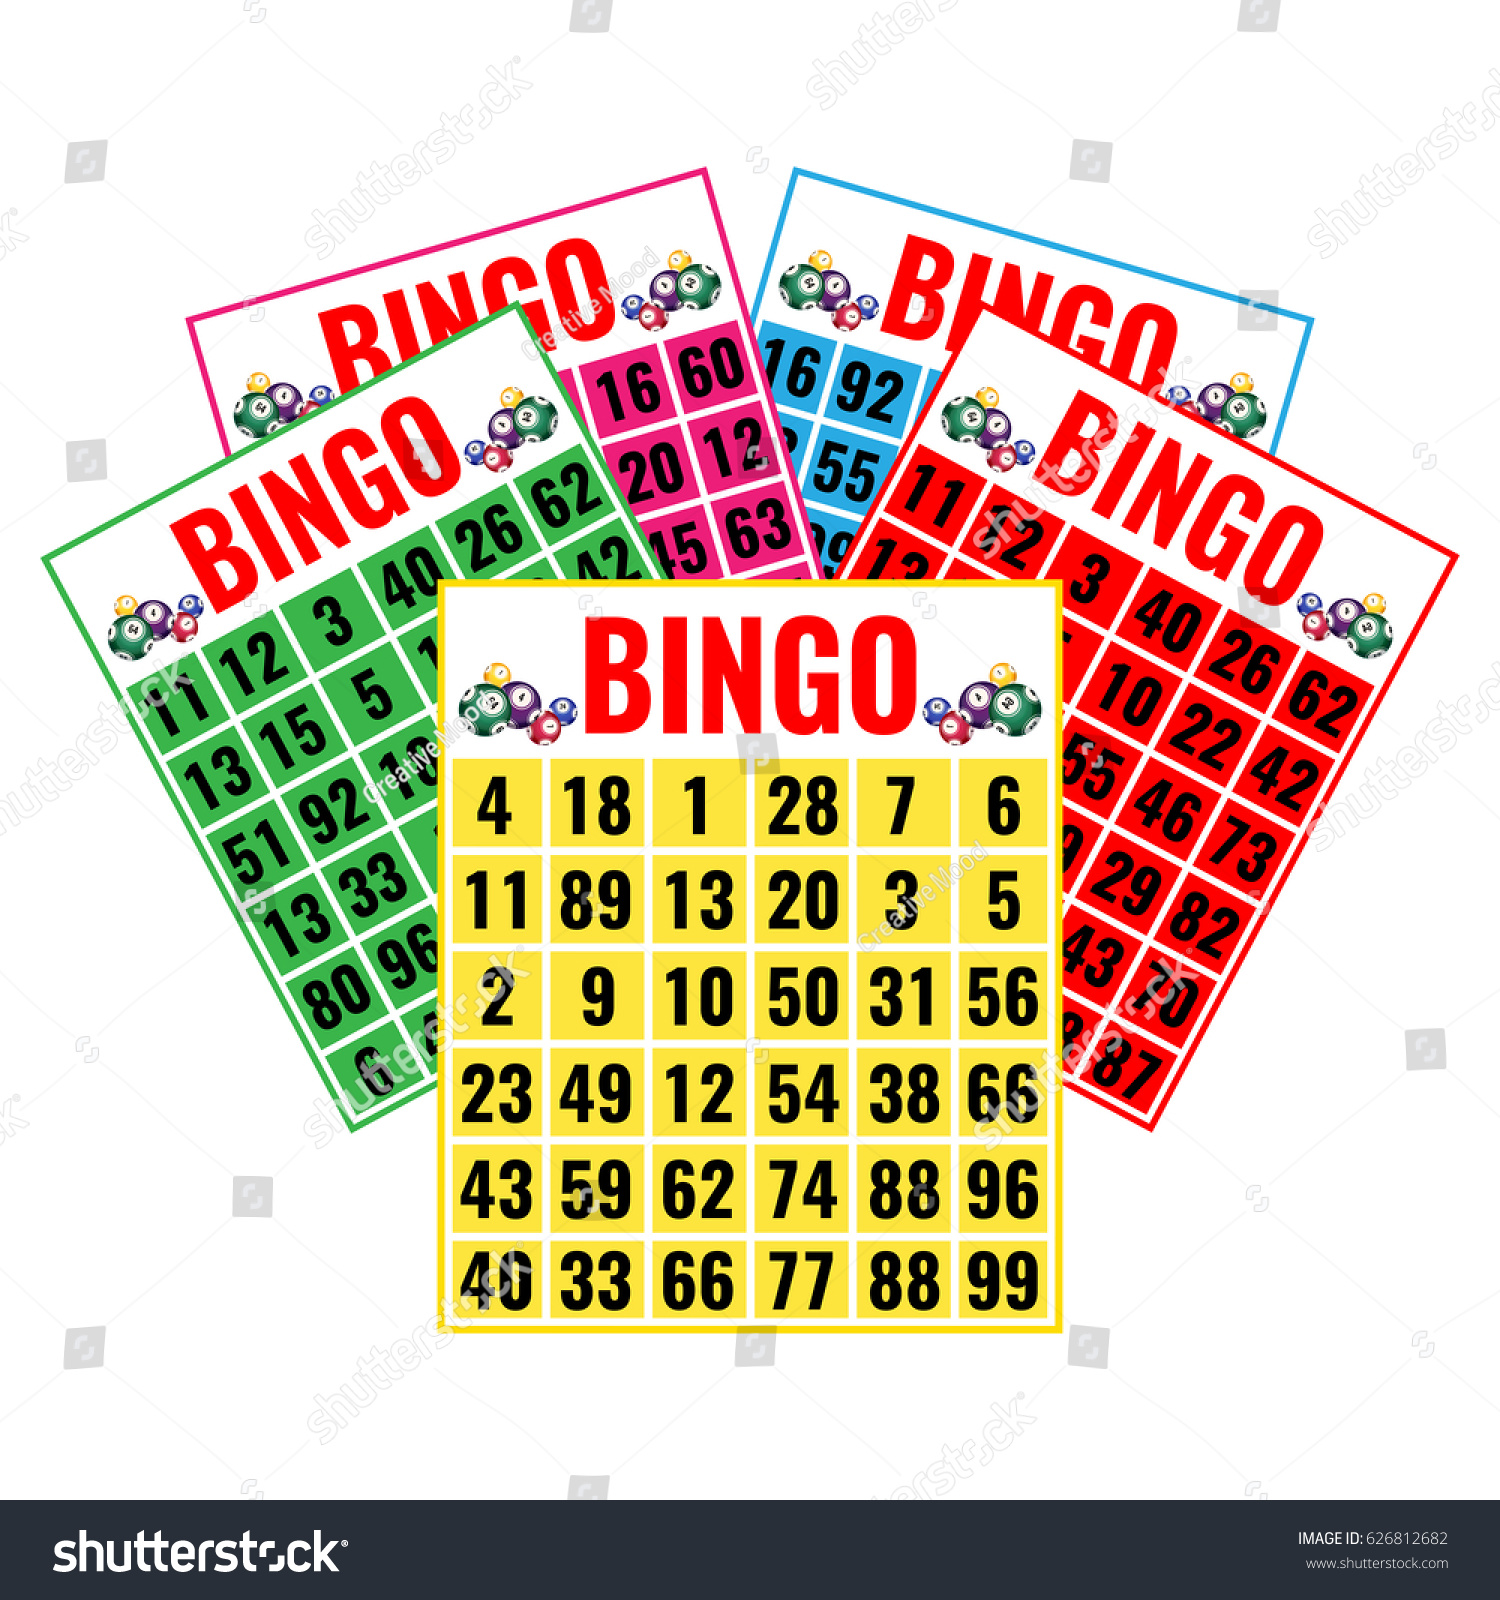 Is bingo gambling wrong rambling gambling man